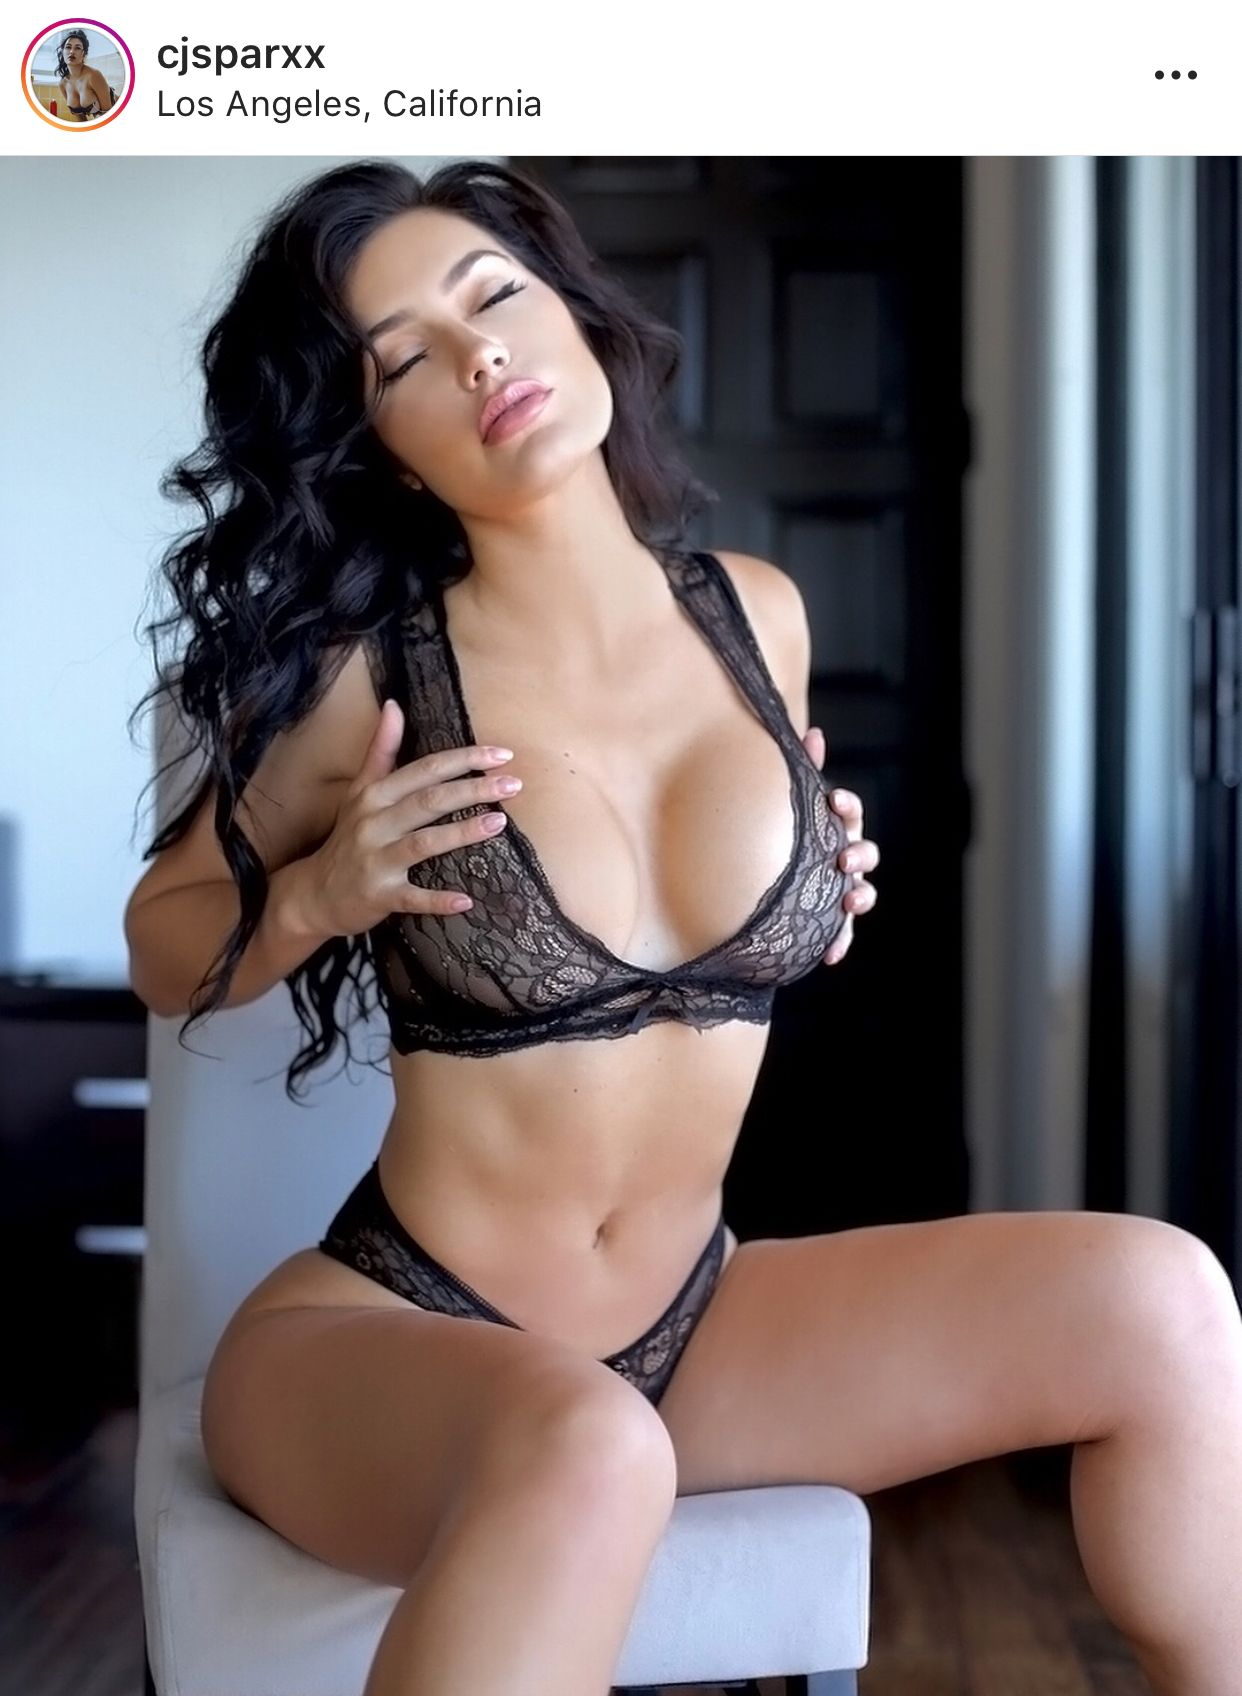 Young Kayla Jean Garvin nude (61 photo), Ass, Hot, Twitter, lingerie 2015